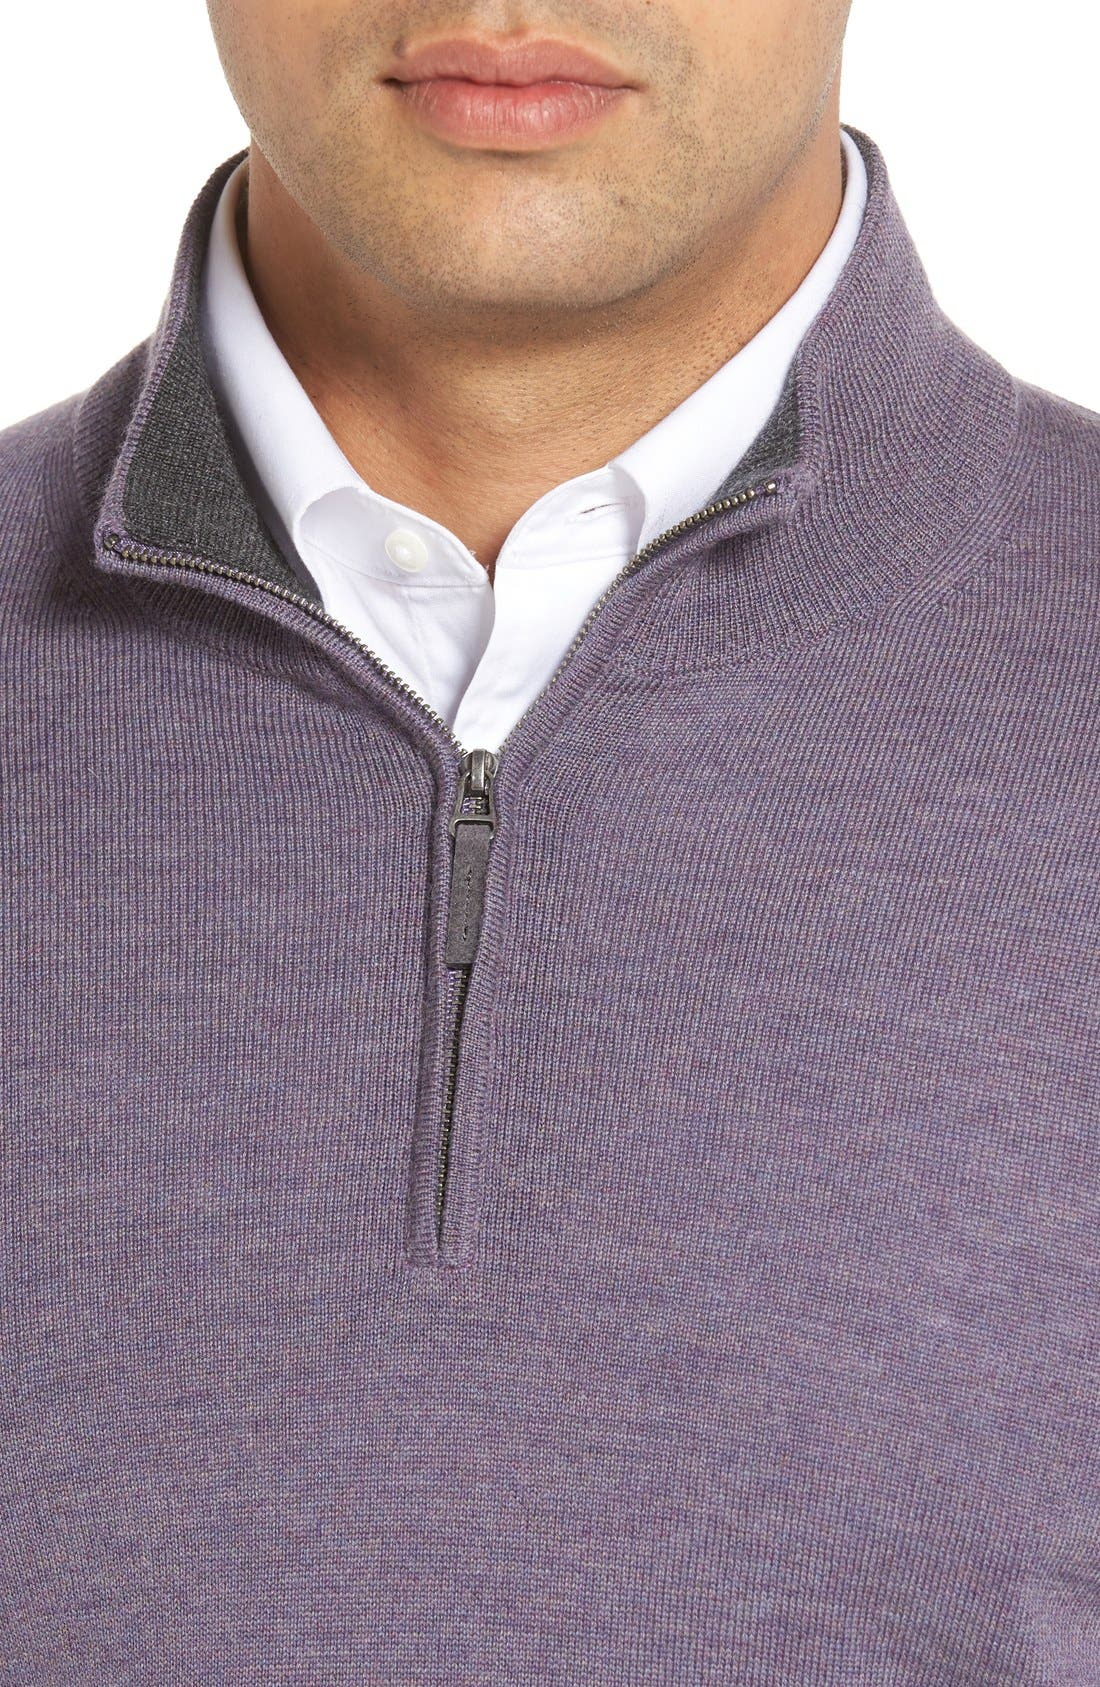 Alternate Image 4  - John W. Nordstrom® Merino Wool Quarter Zip Sweater